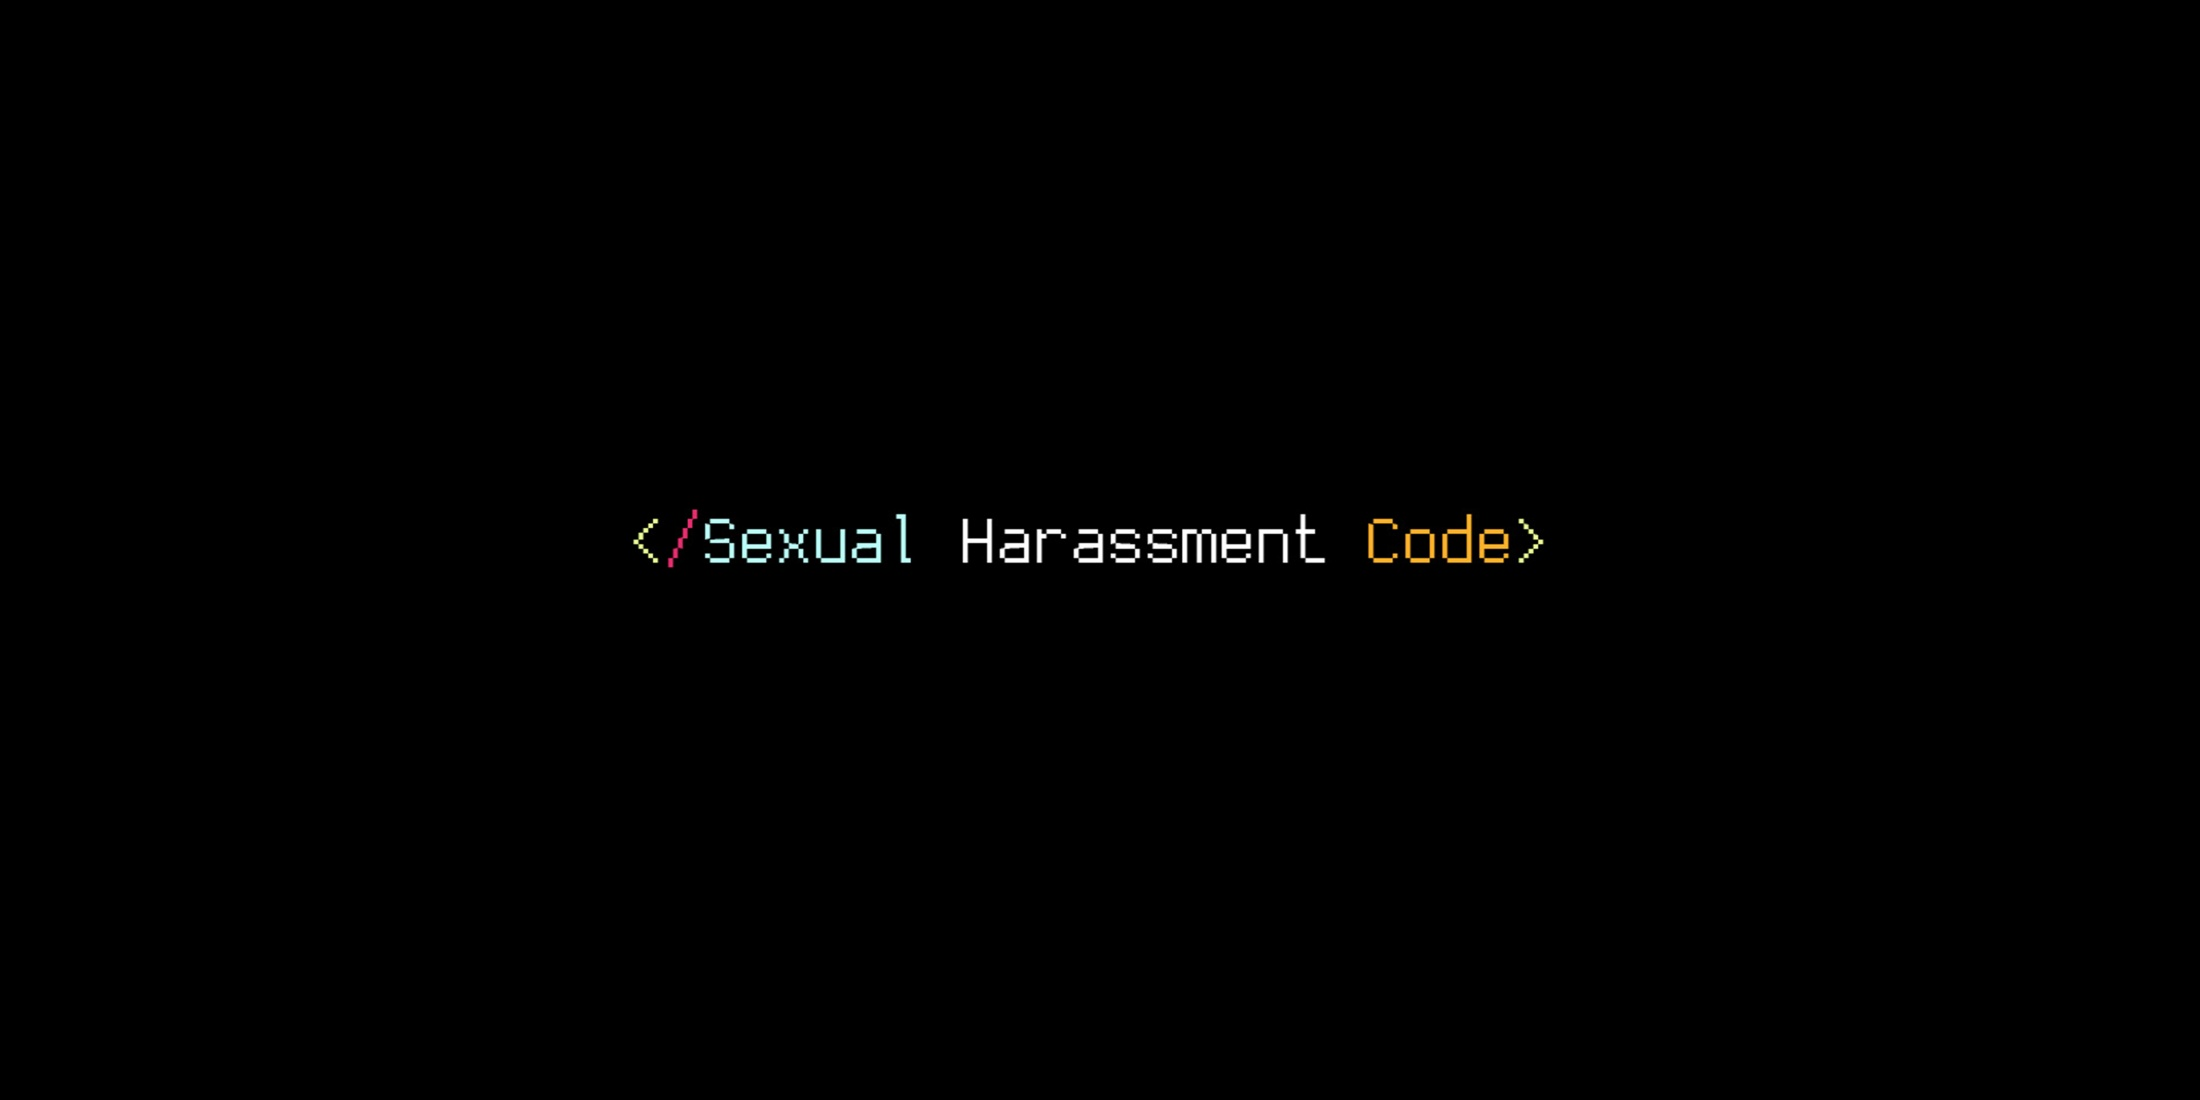 Thumbnail for </Sexual Harassment Code>